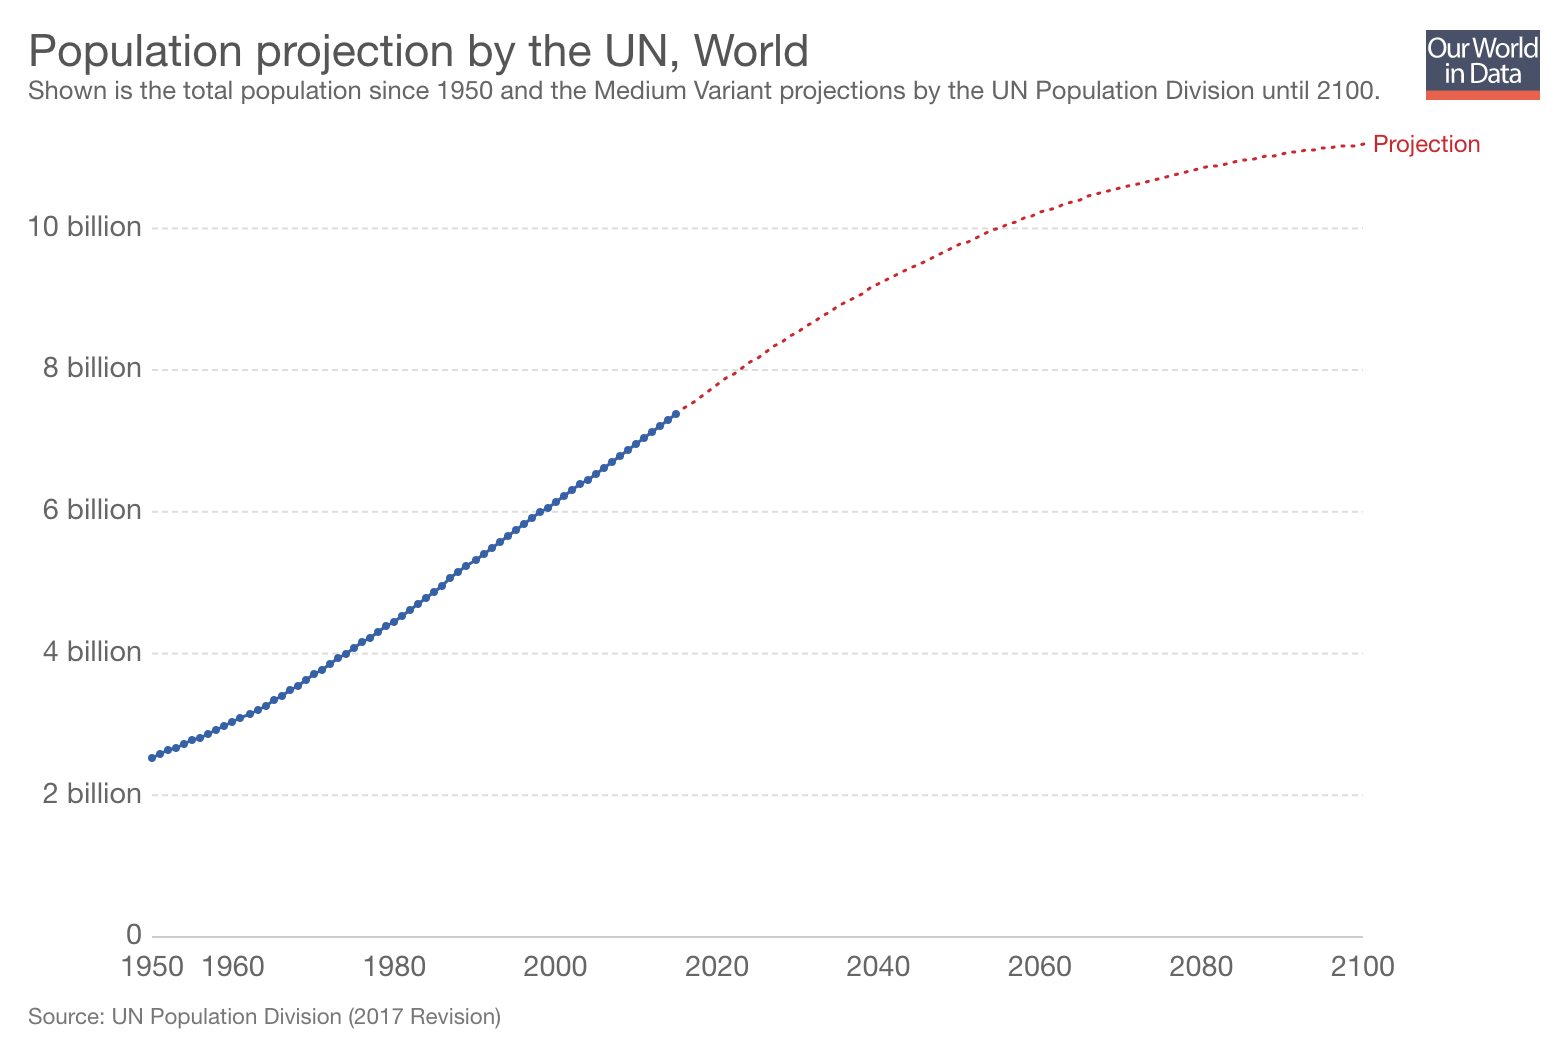 UN Population Growth